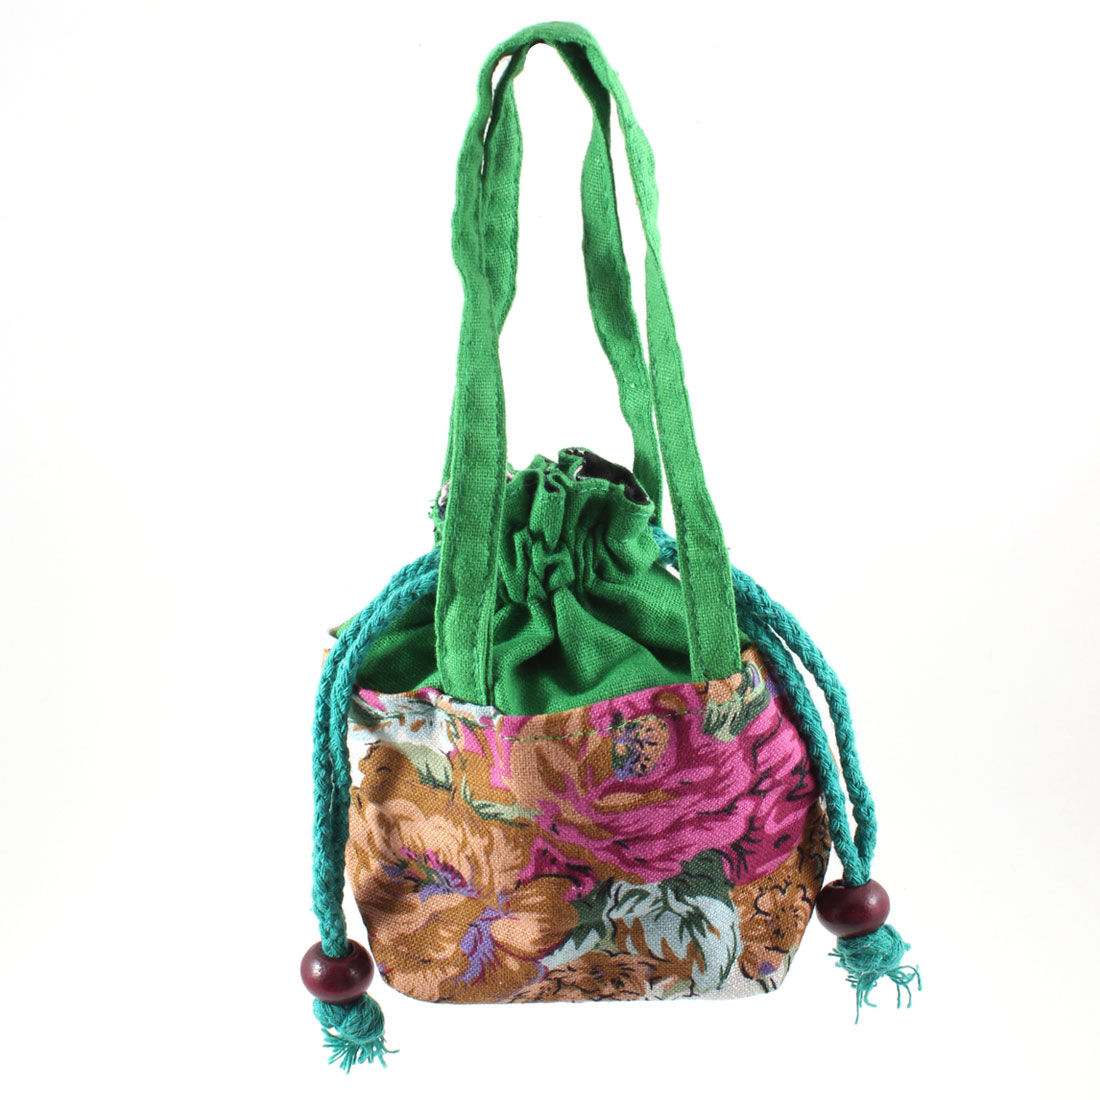 Woman Accessory Champagne Color Flower Prints Nylon Purse Tote Handbag Green